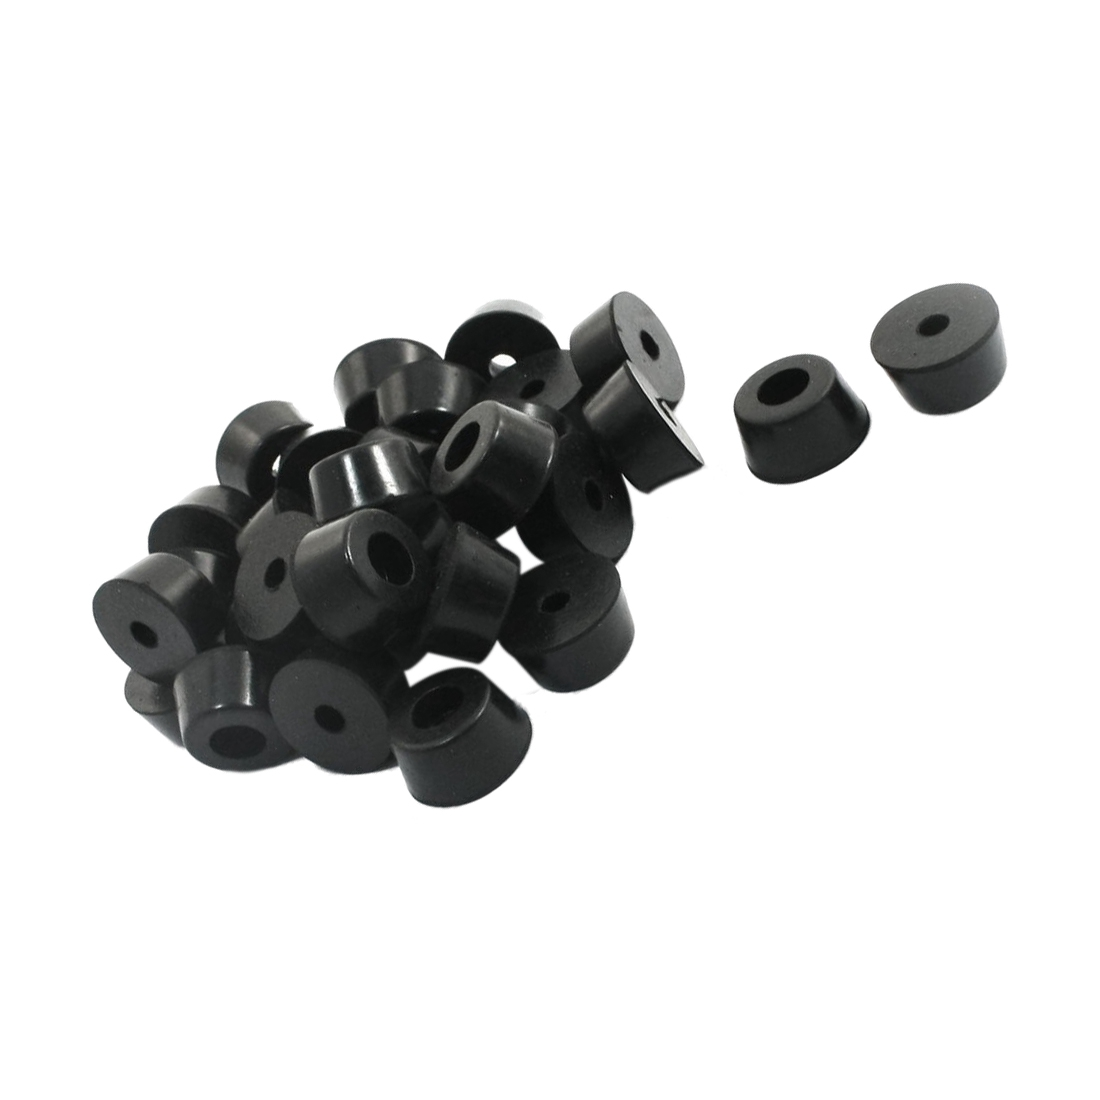 Home Furniture Black Rubber Feet 13 Mm X 7 Mm 30 PCS